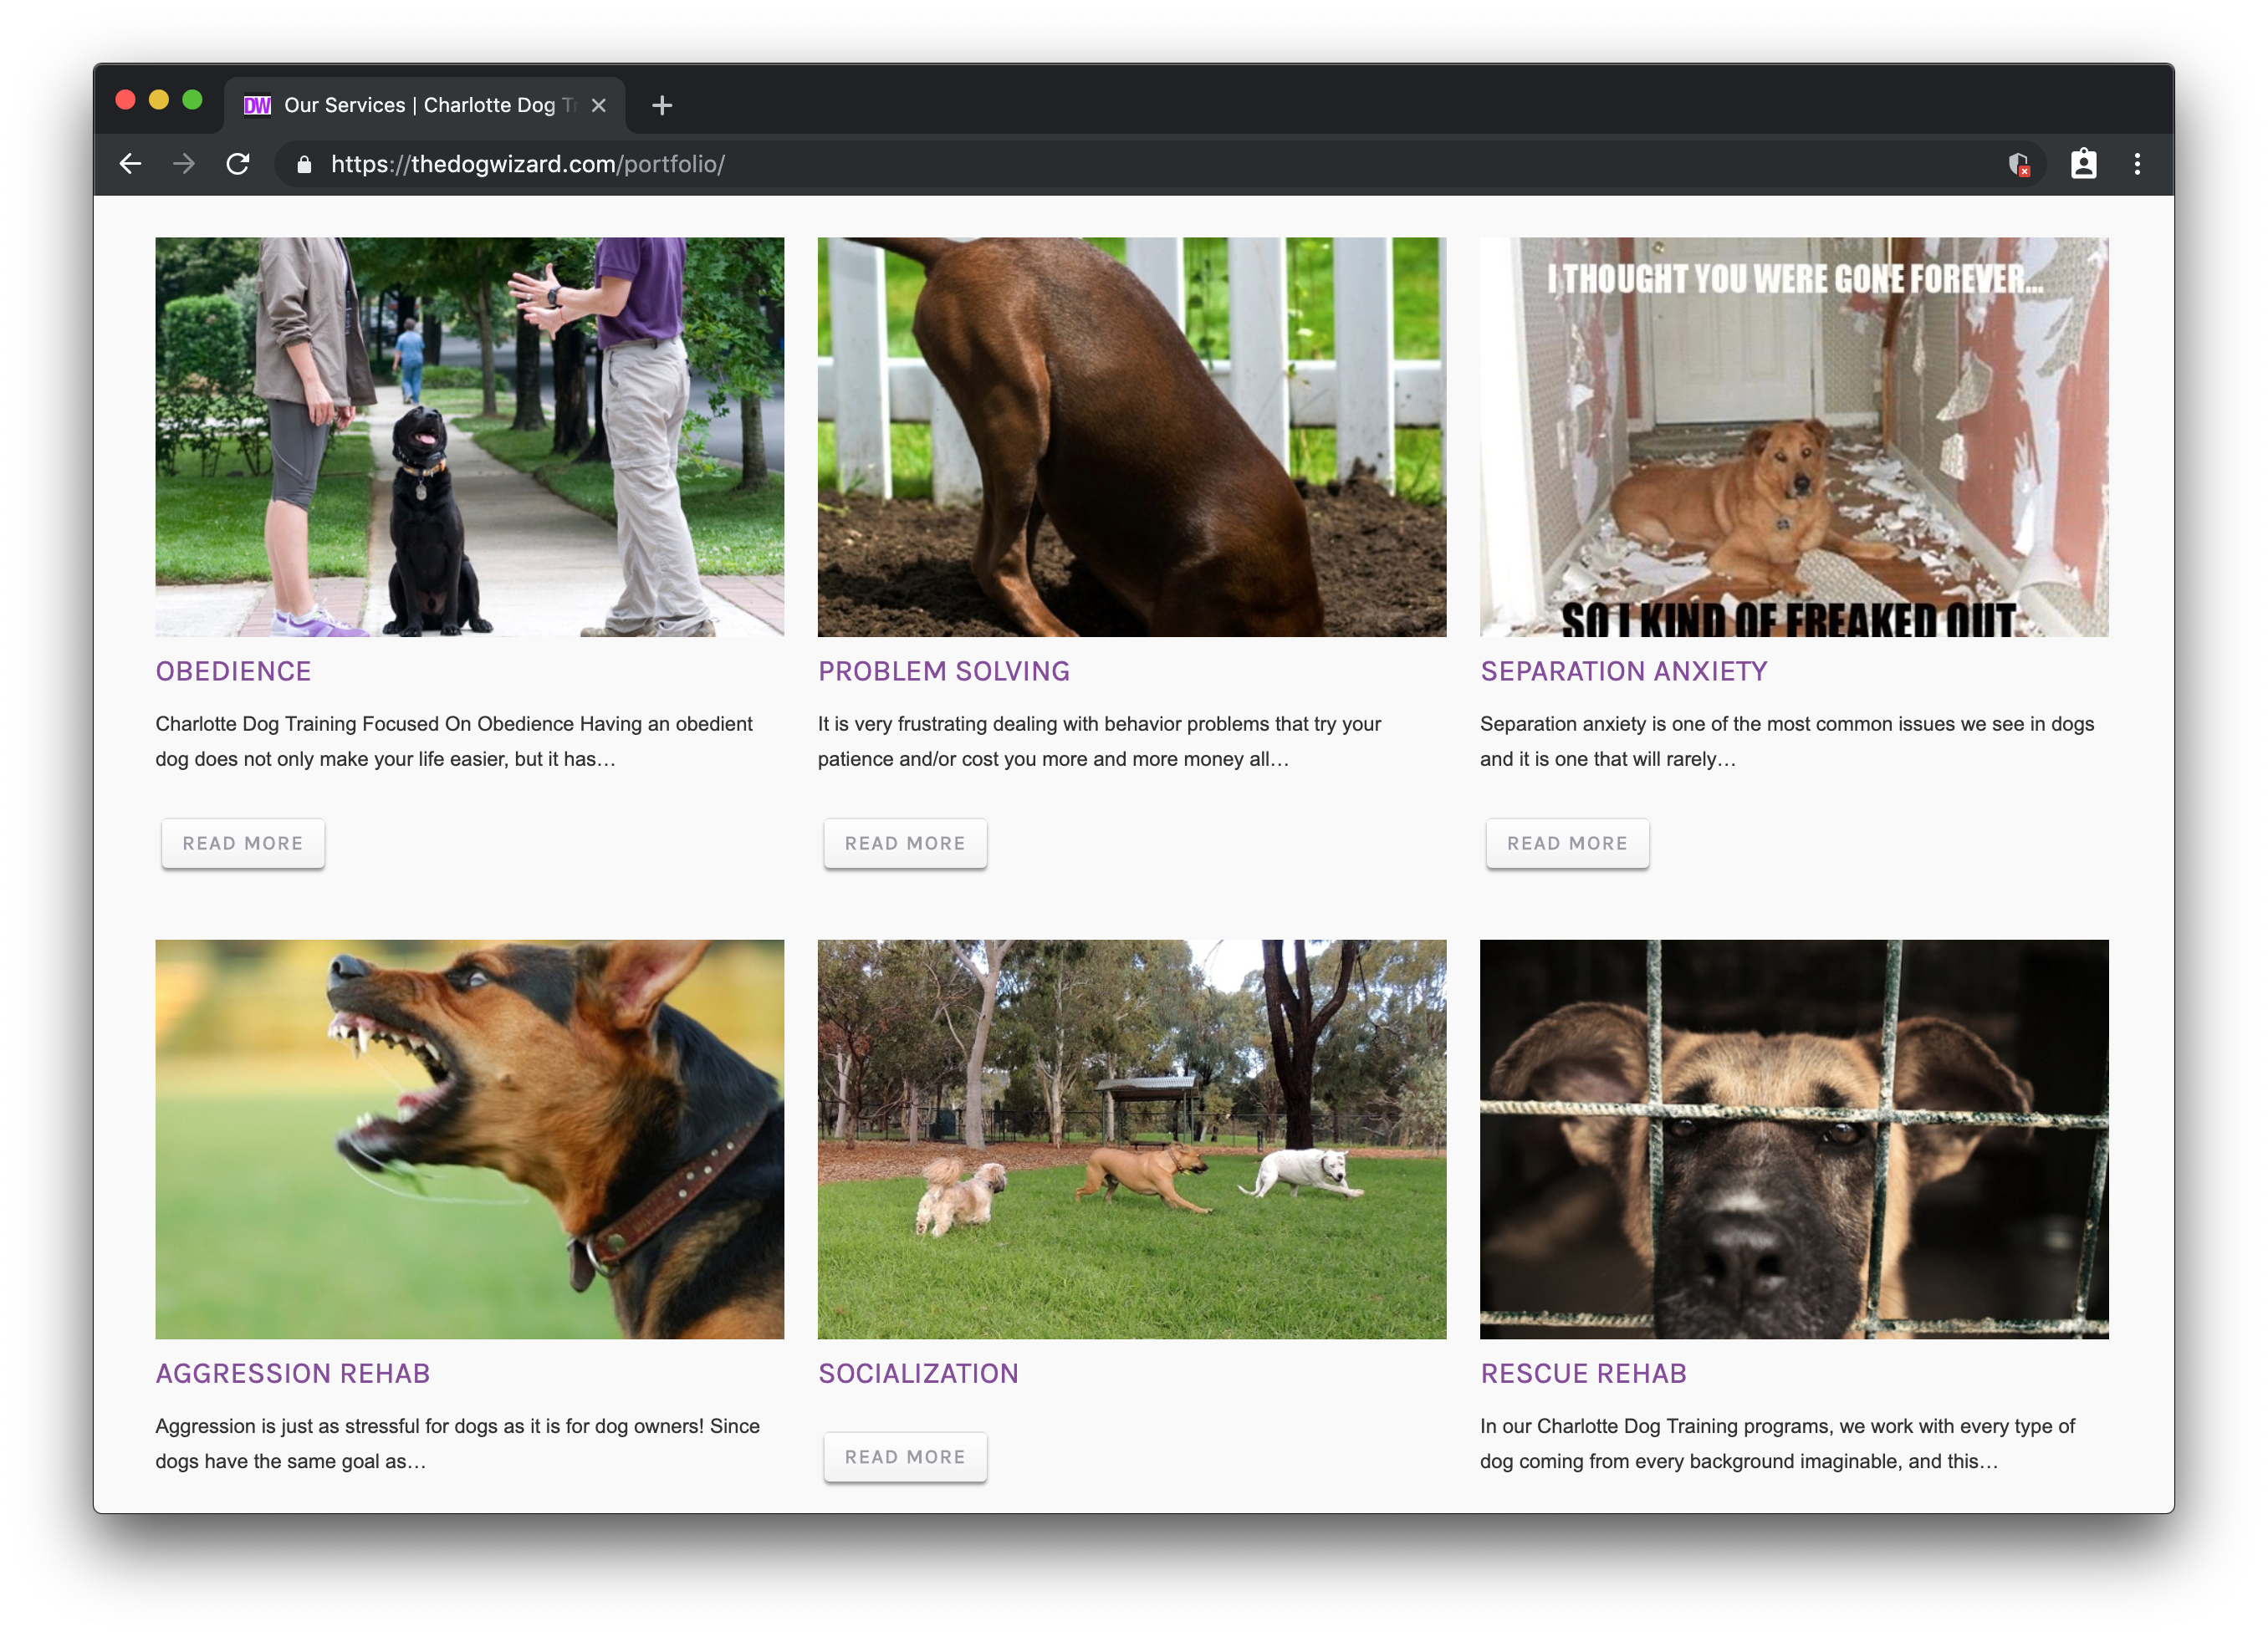 A screenshot of The Dog Wizard services webpage showing a 3 by 2 grid of images and headlines promoting dog services, like obedience, problem solving, and socialization.